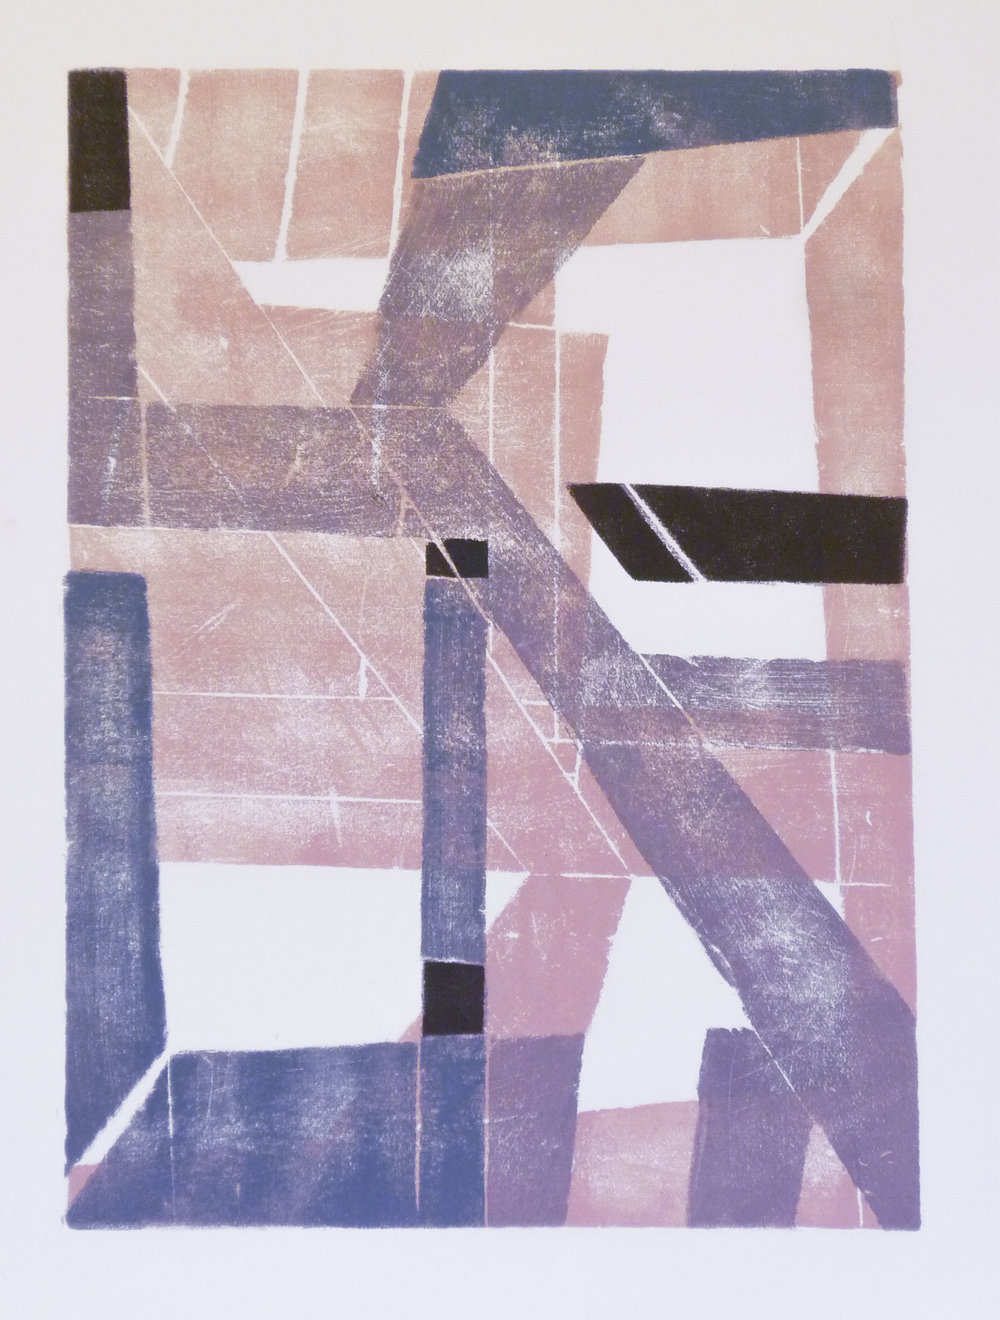 Cityscape 3  (varied edition), Rena Sava, 2014  Reduction relief print on paper